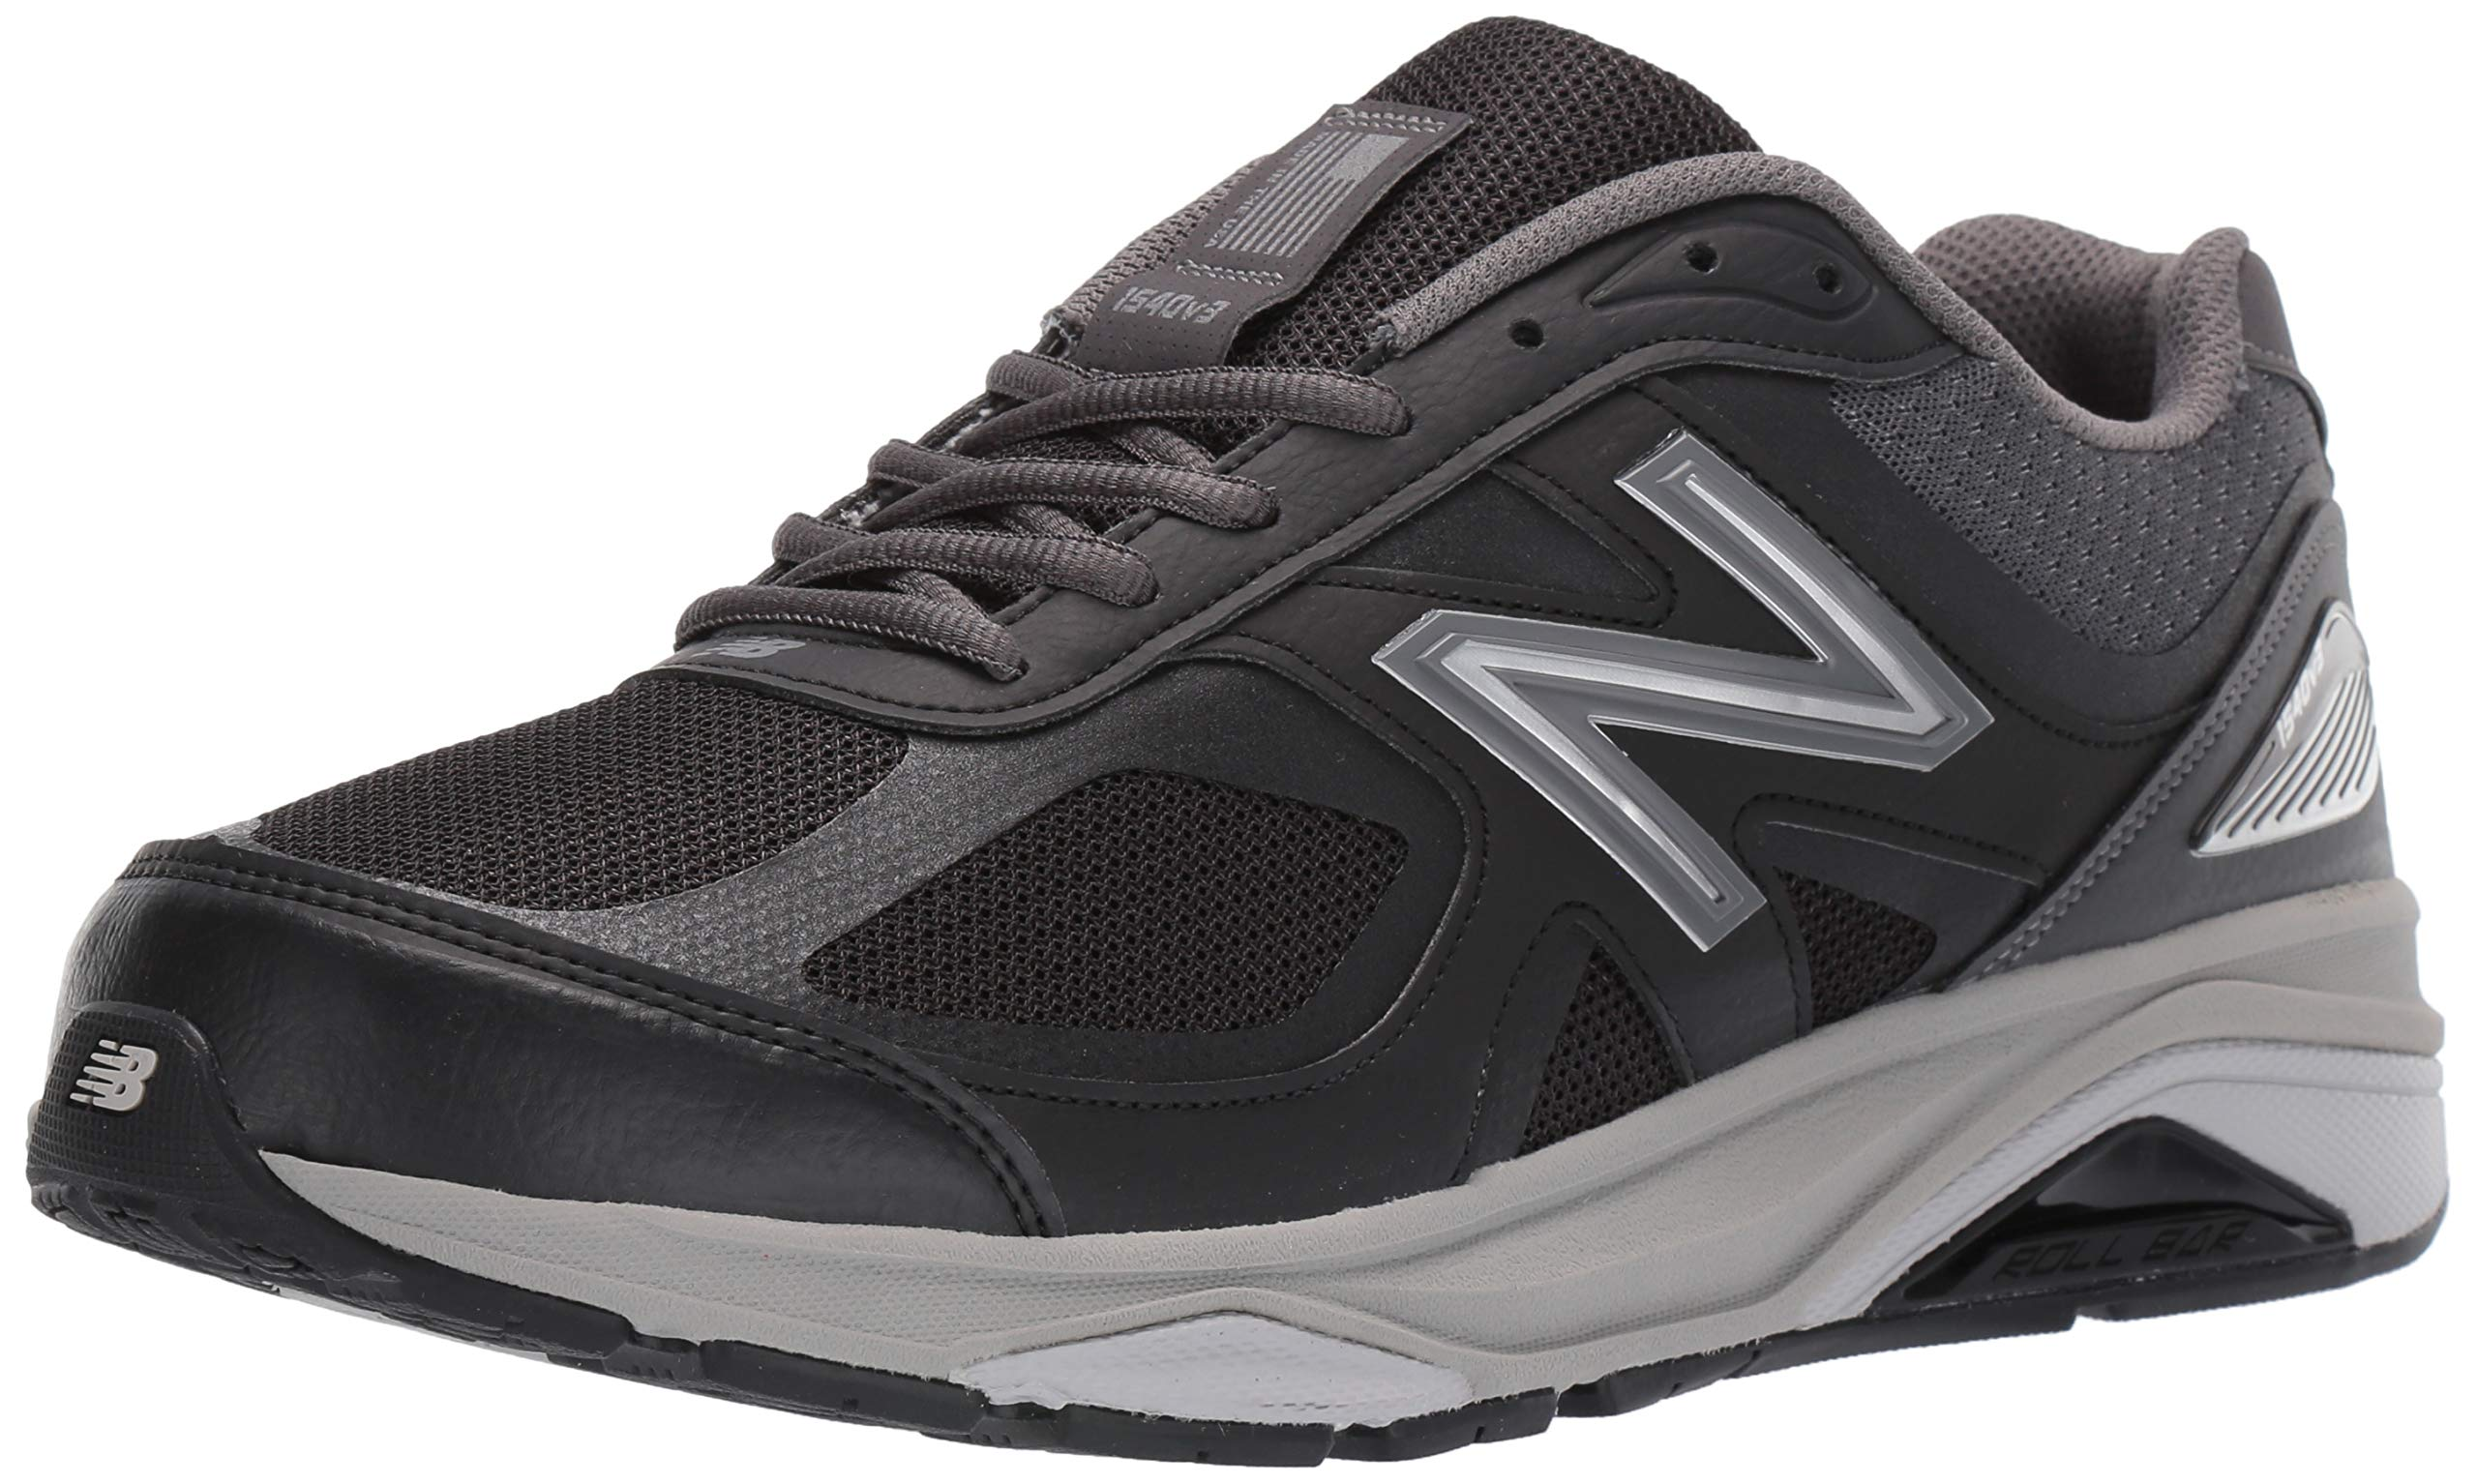 New Balance Men's 1540v3 Running Shoe, Black/Castlerock, 7 XW US